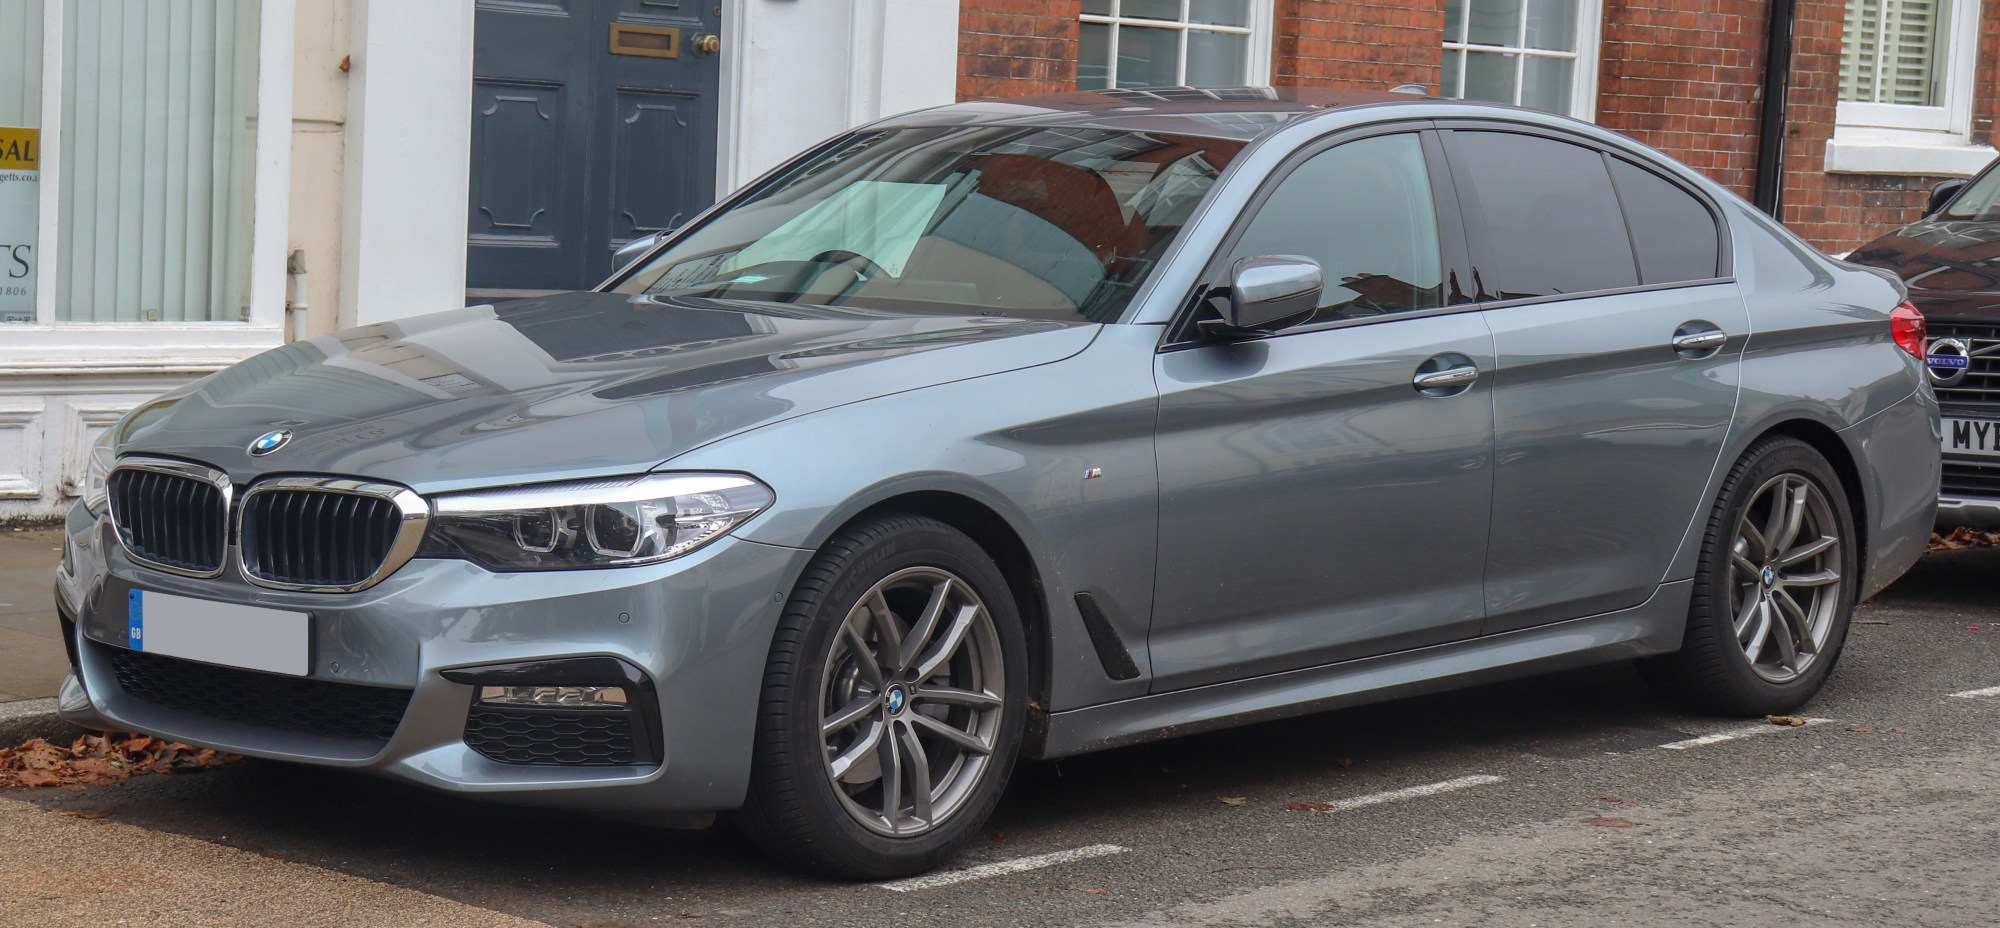 hight resolution of bmw 5 series g30